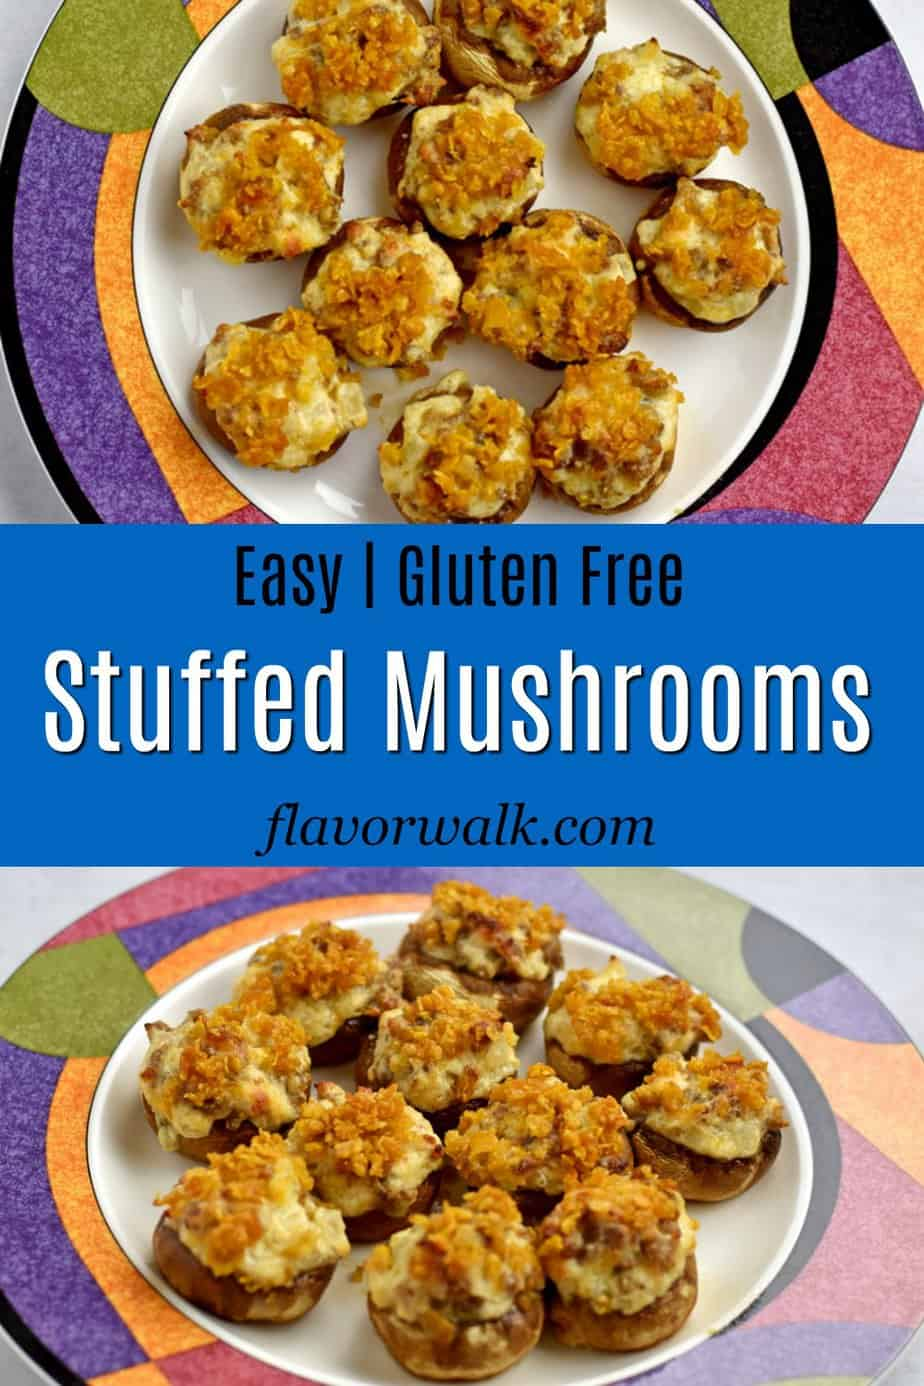 Top image and bottom image is round plate filled with gluten free stuffed mushrooms and middle image is blue text box.